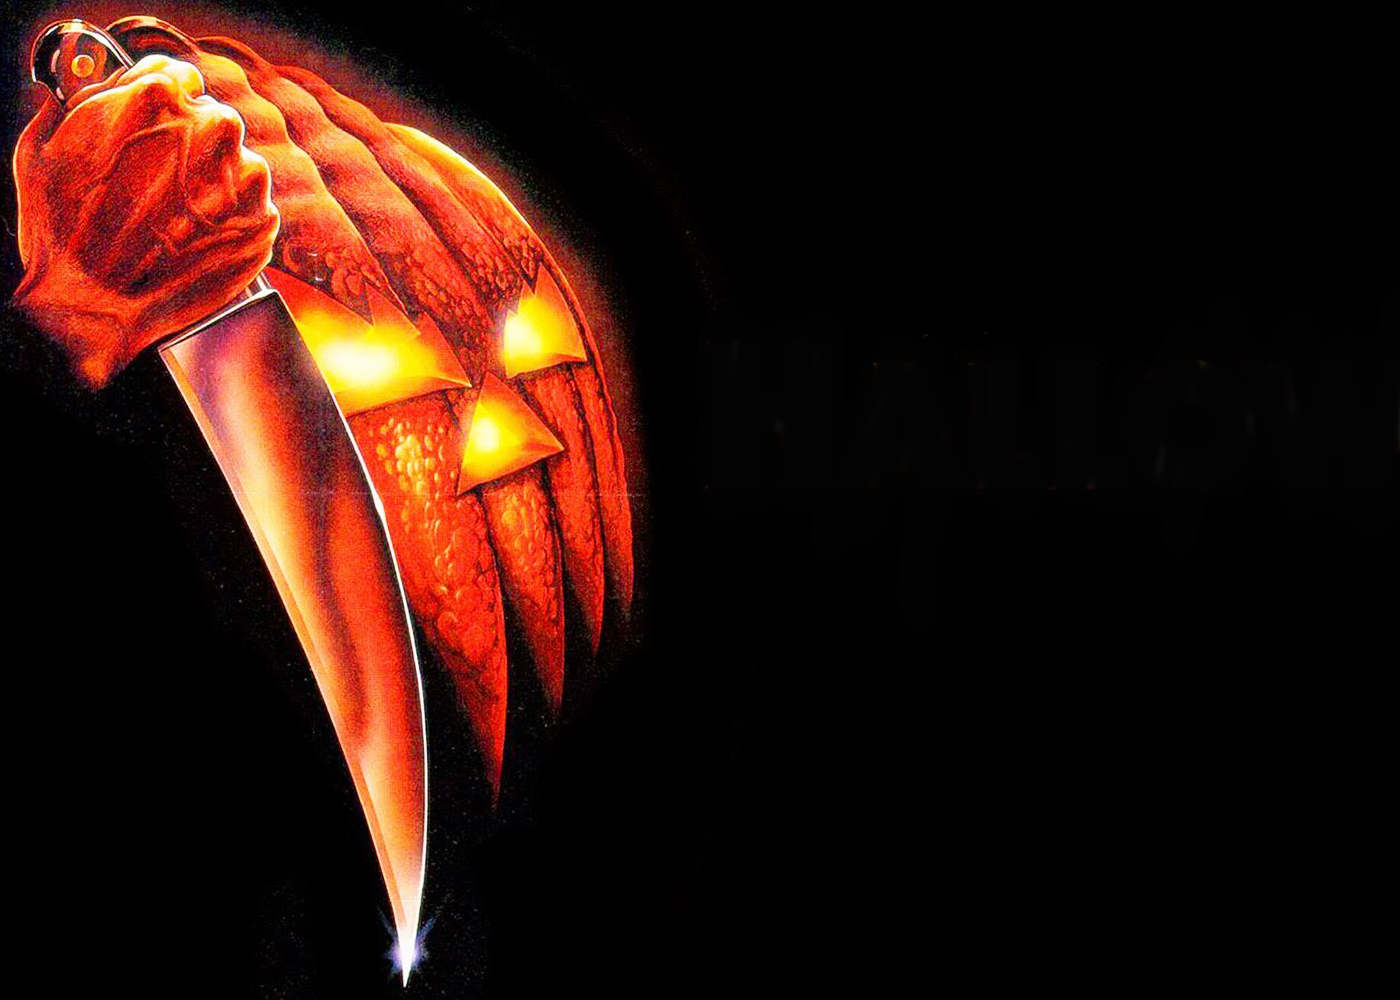 Fright Night! The Top 5 Horror Films to Watch this Halloween